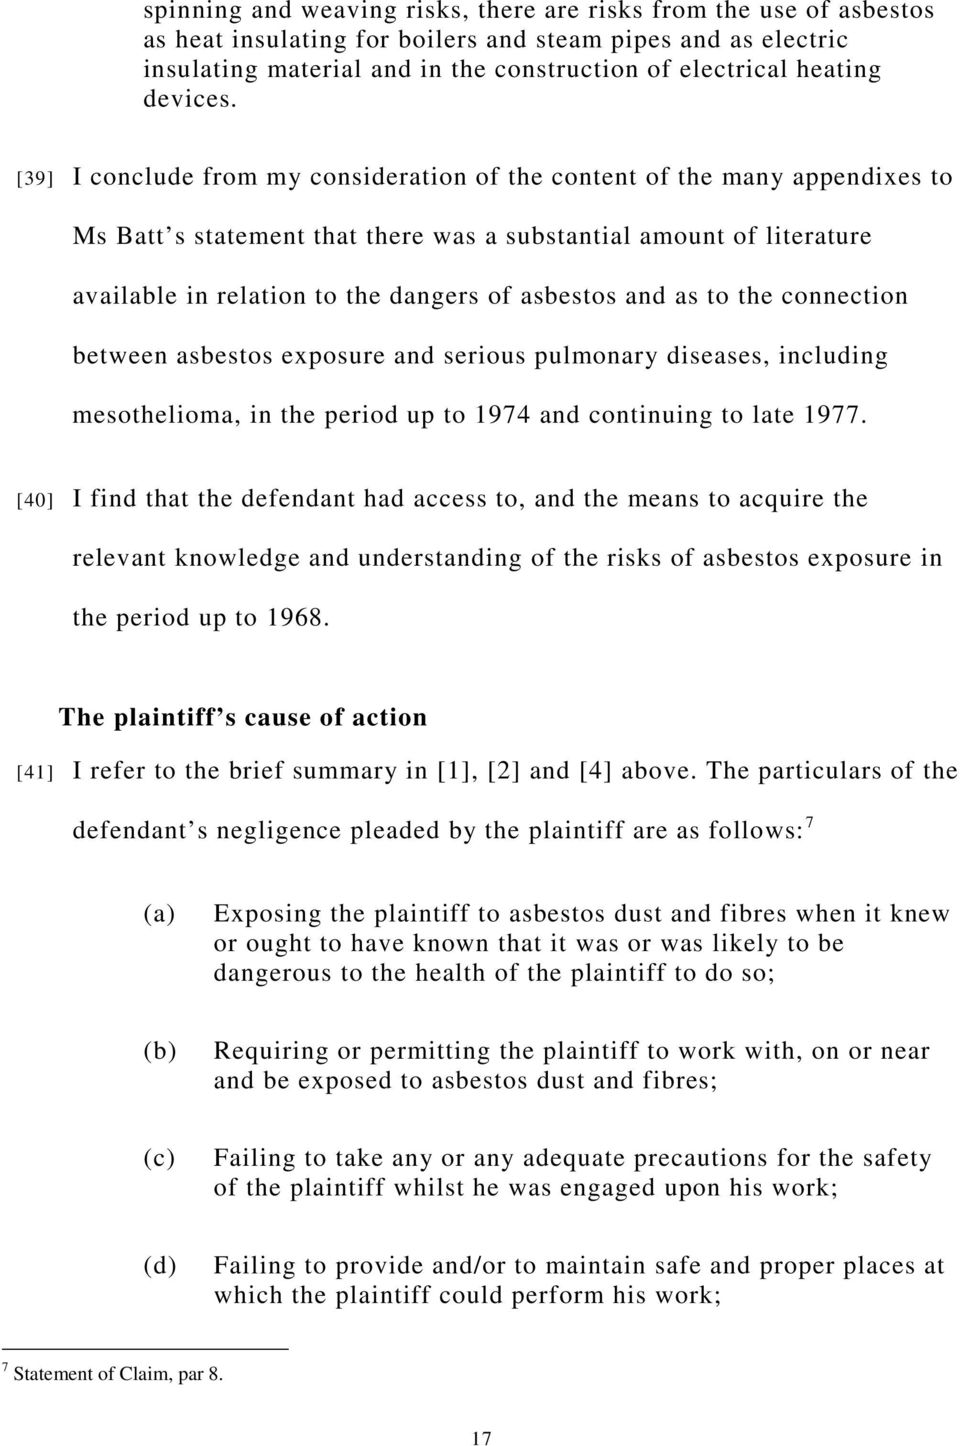 [39] I conclude from my consideration of the content of the many appendixes to Ms Batt s statement that there was a substantial amount of literature available in relation to the dangers of asbestos